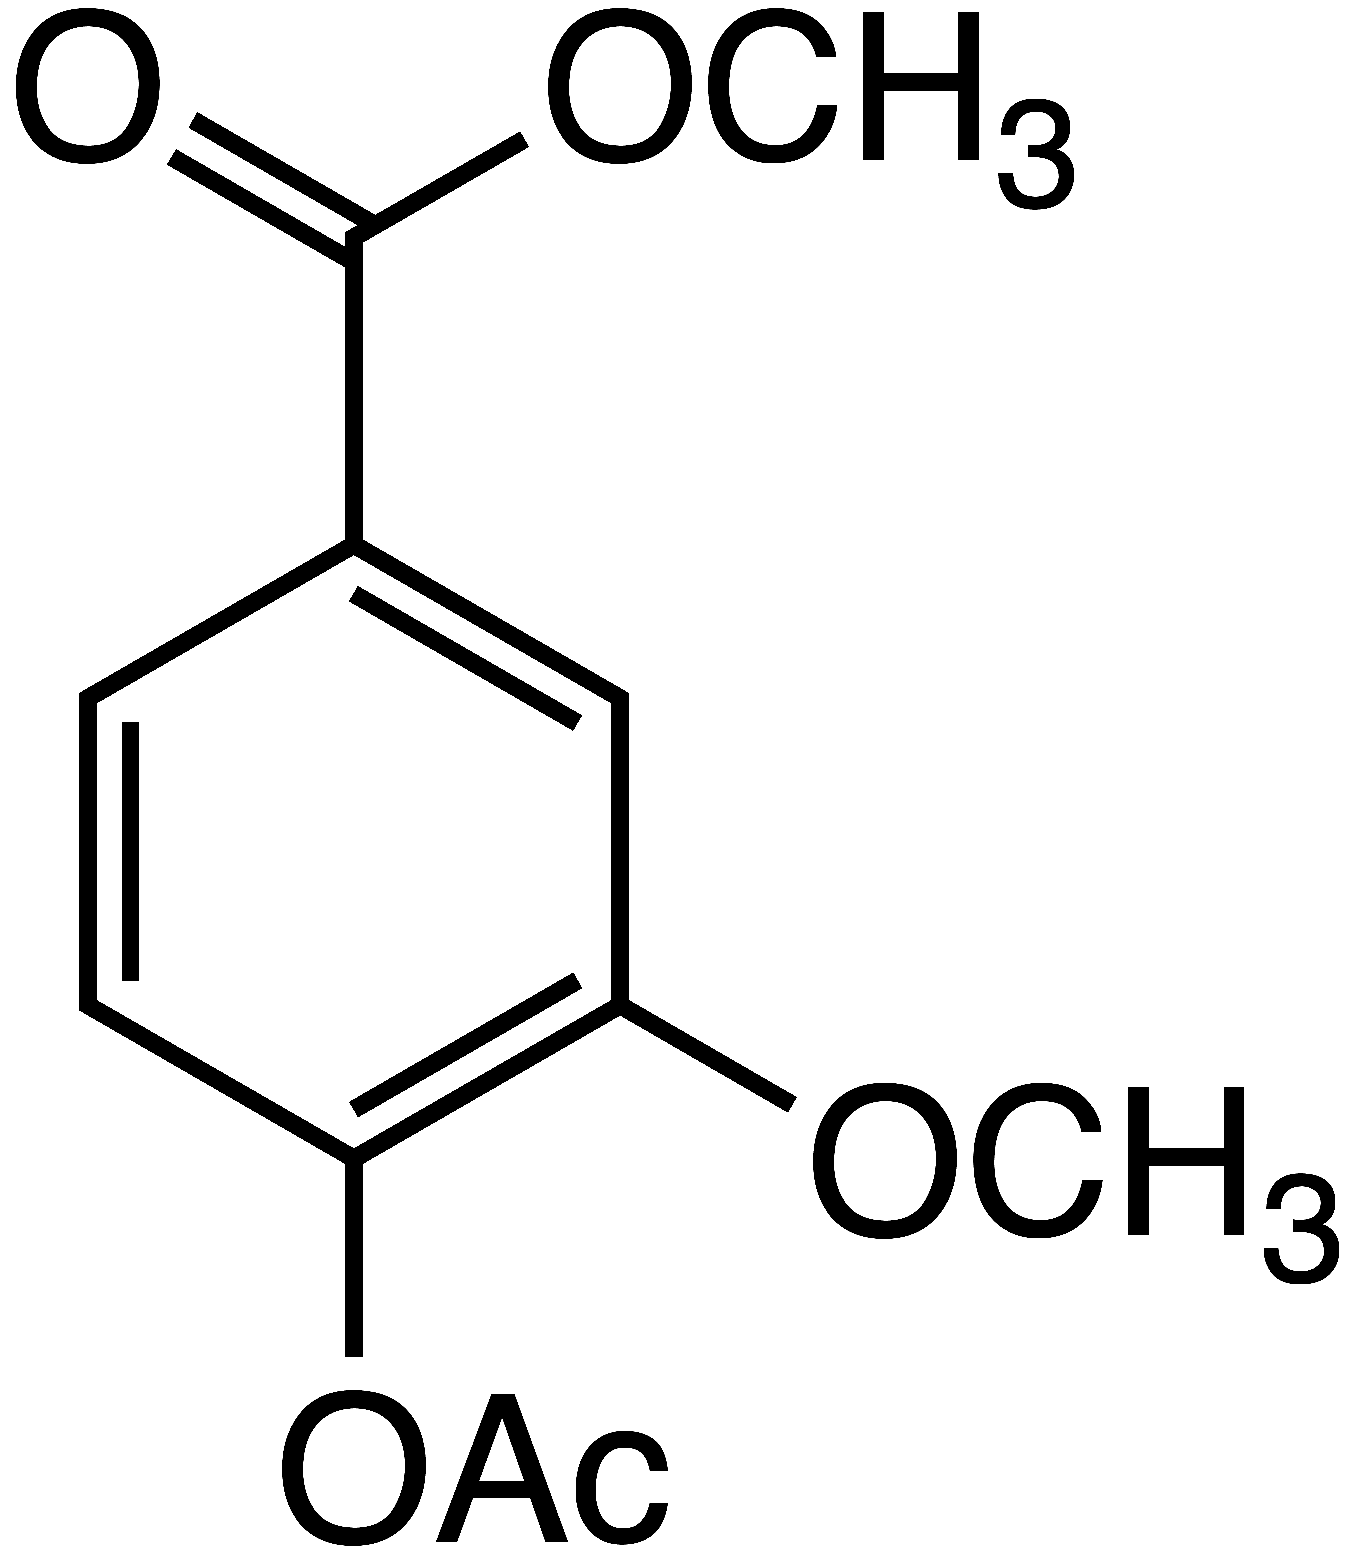 4-acetoxy-3-methoxy methyl benzoate image